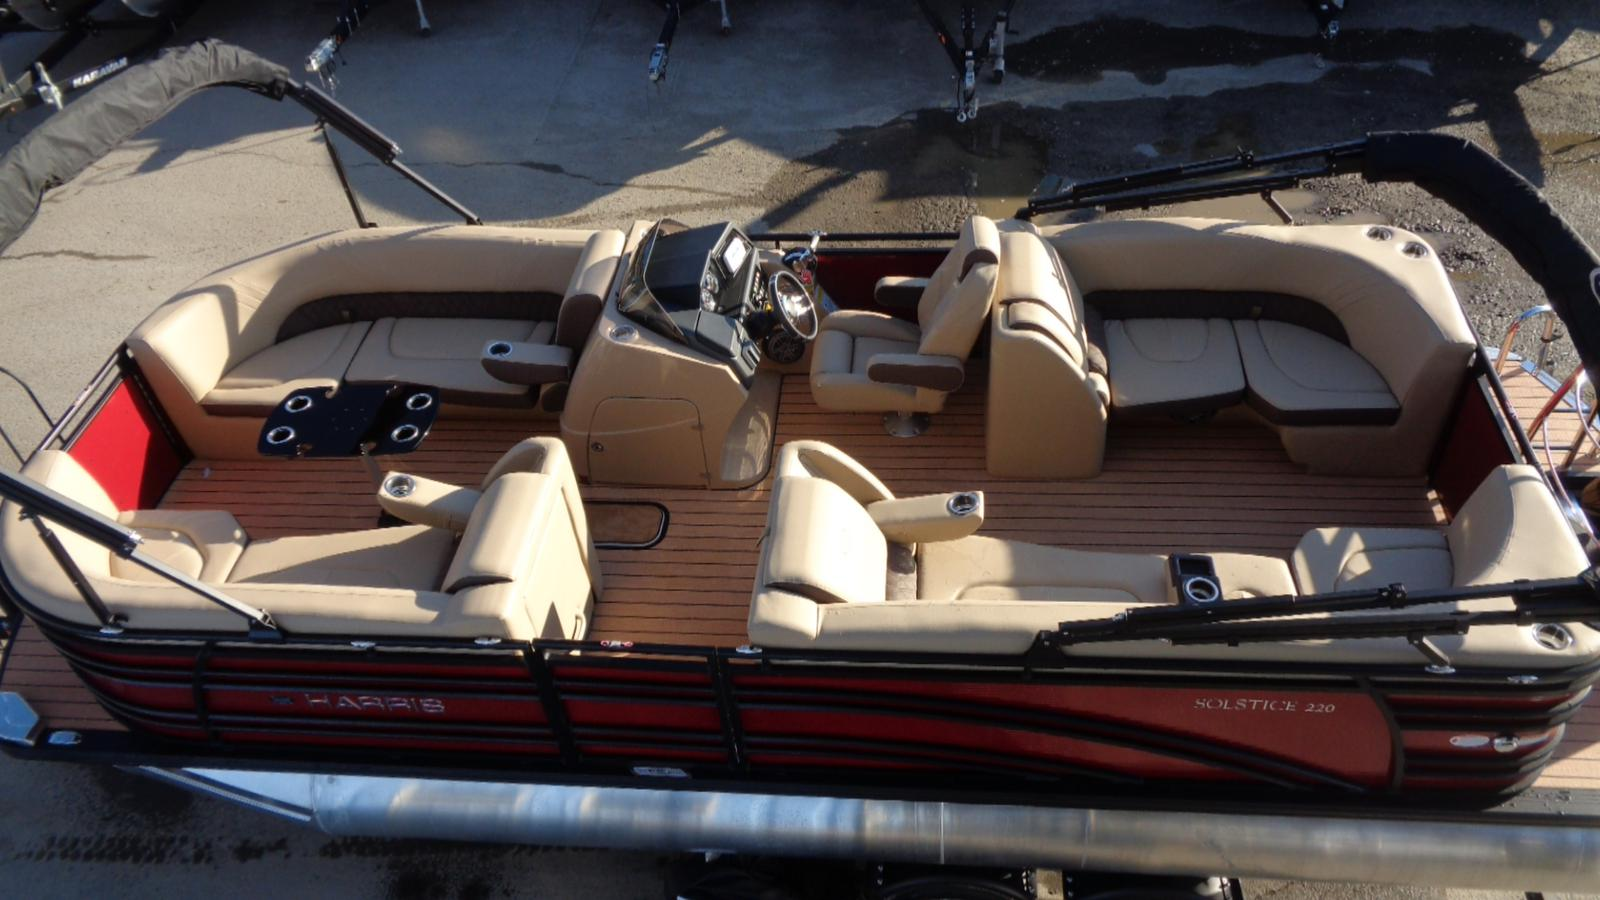 For Sale: 2019 Harris Solstice 220 24ft<br/>Dockside Marine Centre, LTD.